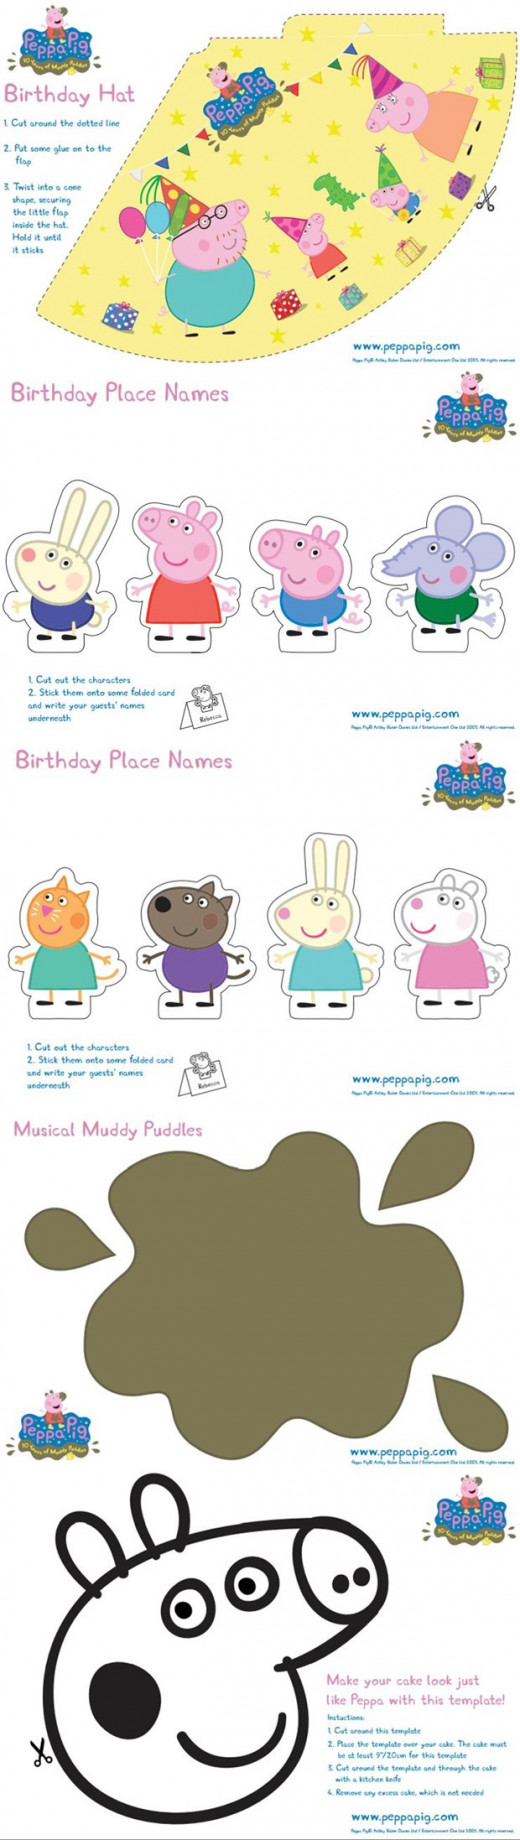 peppa pig party ideas u0026 diy for parties hubpages